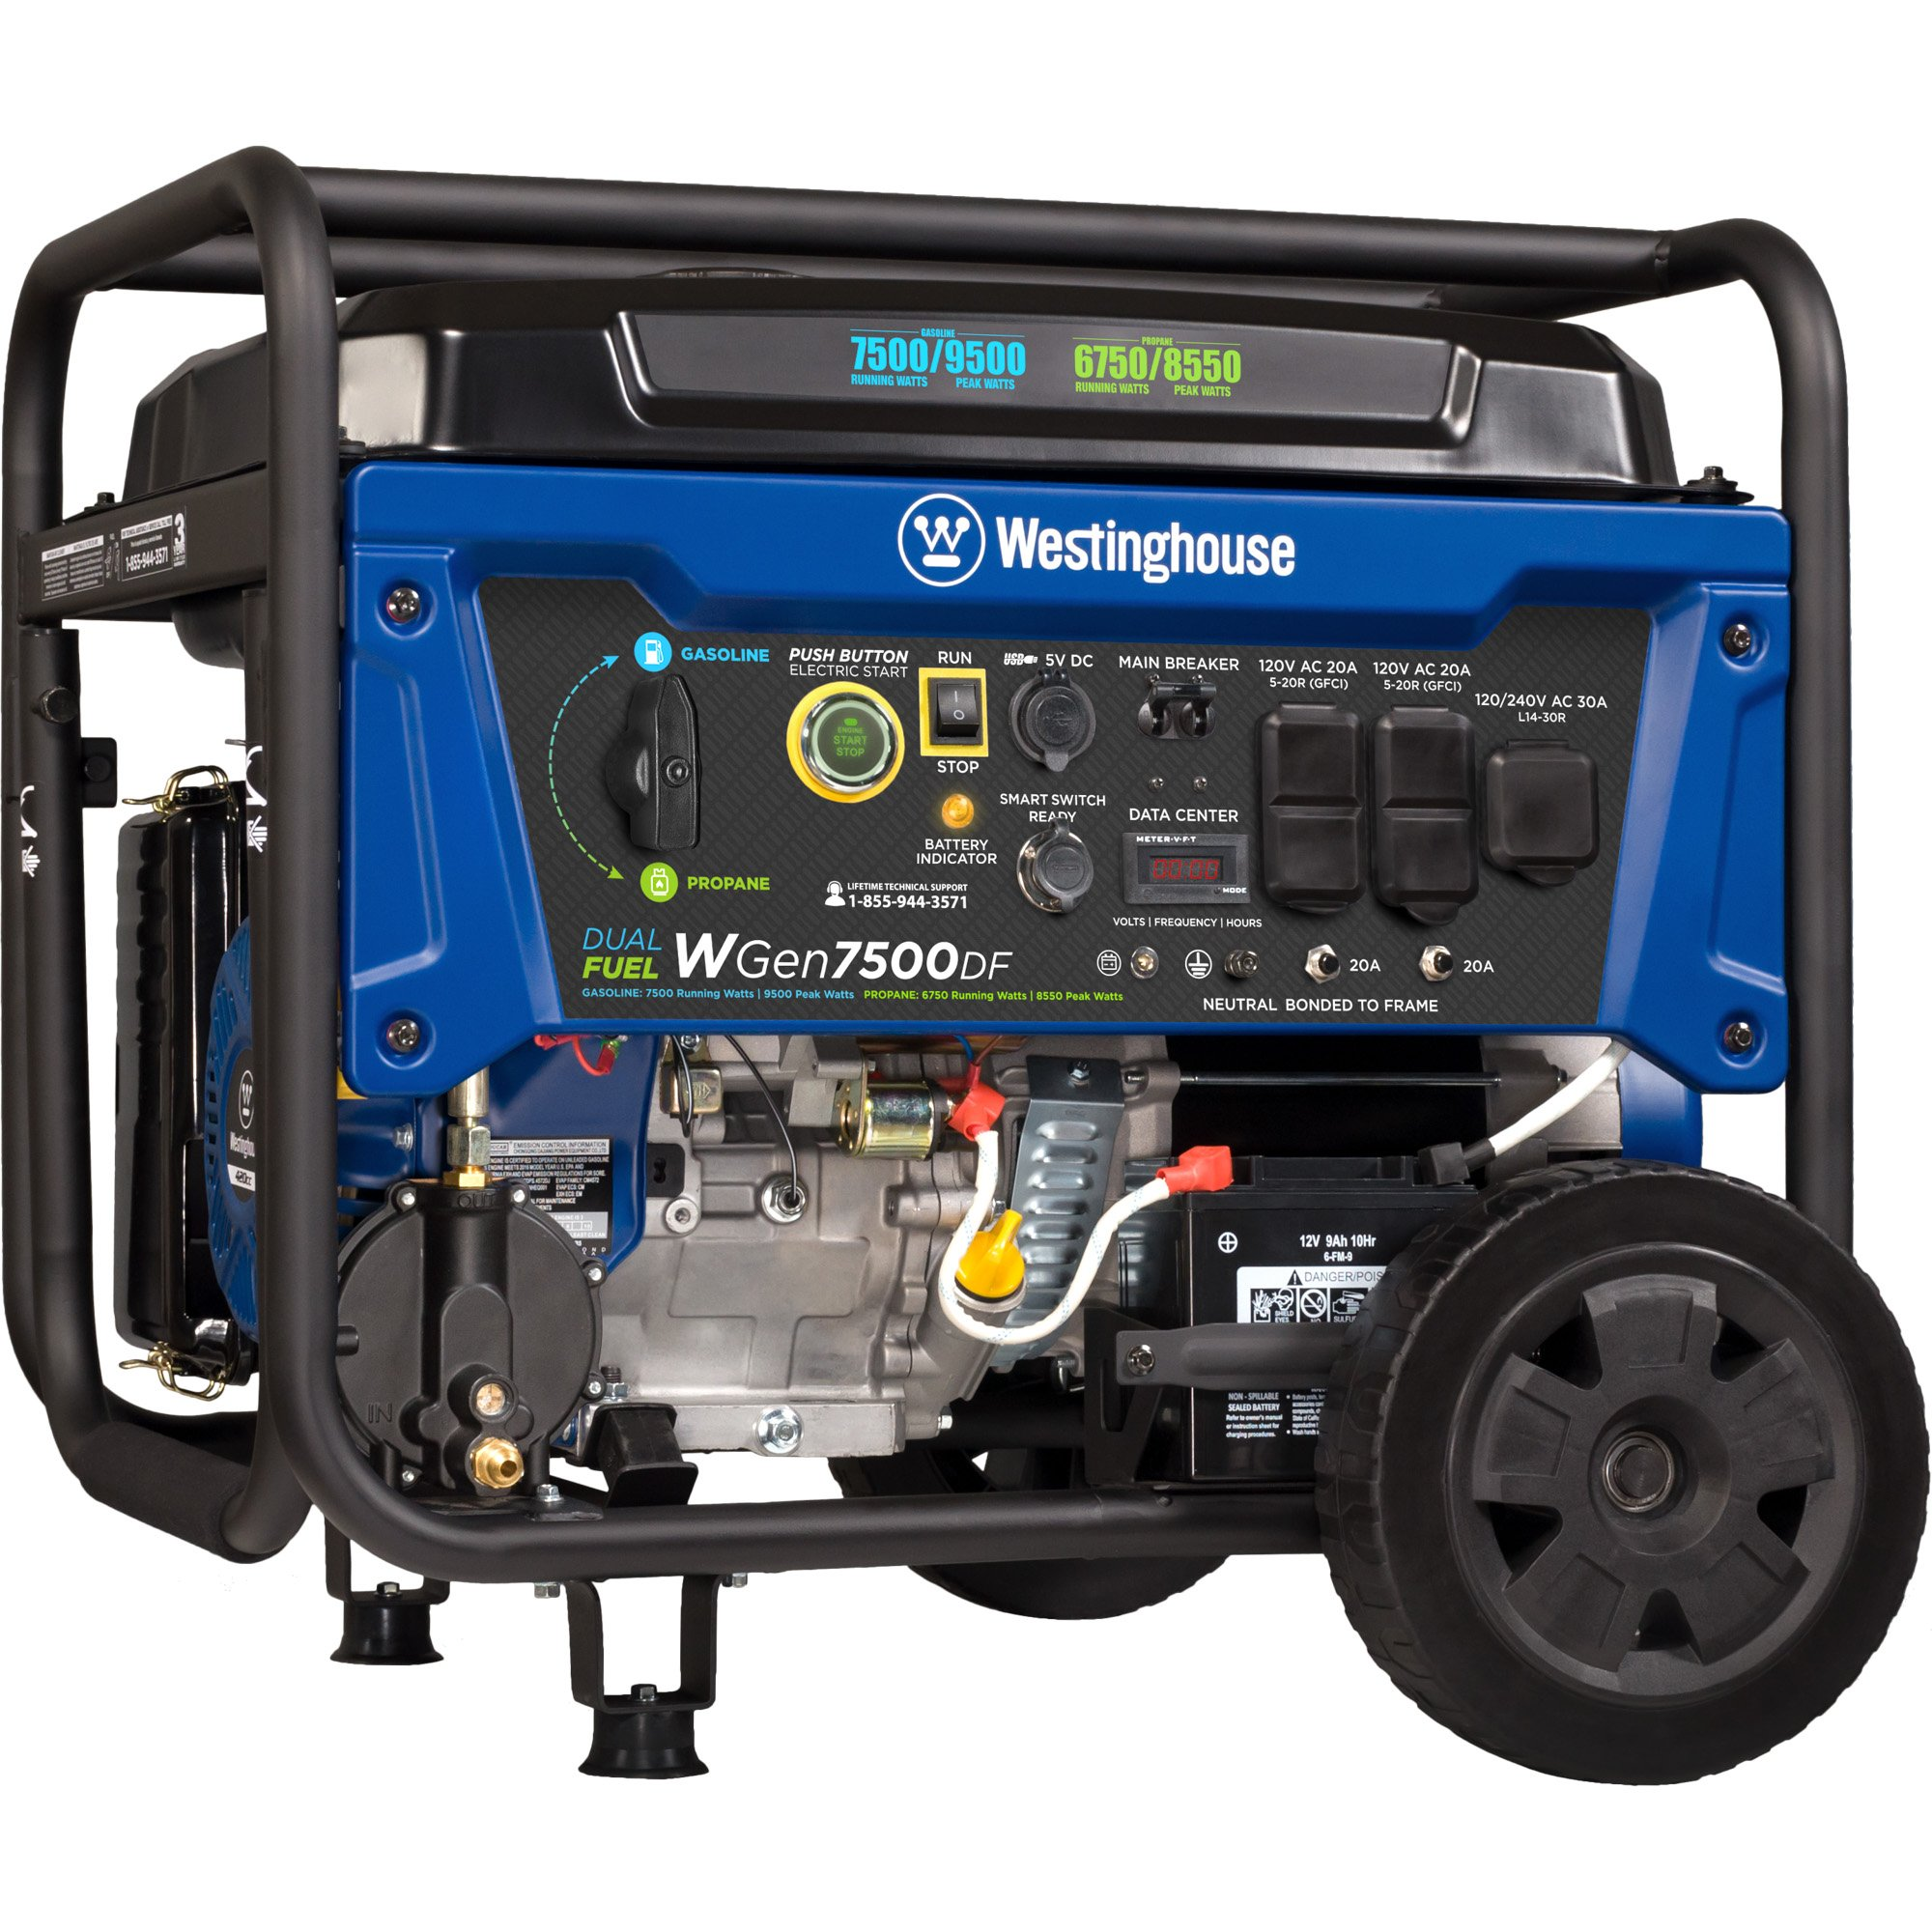 Westinghouse WGen7500DF Dual Fuel Portable Generator - 7500 Rated Watts & 9500 Peak Watts - Gas or Propane Powered - CARB Compliant by Westinghouse (Image #9)